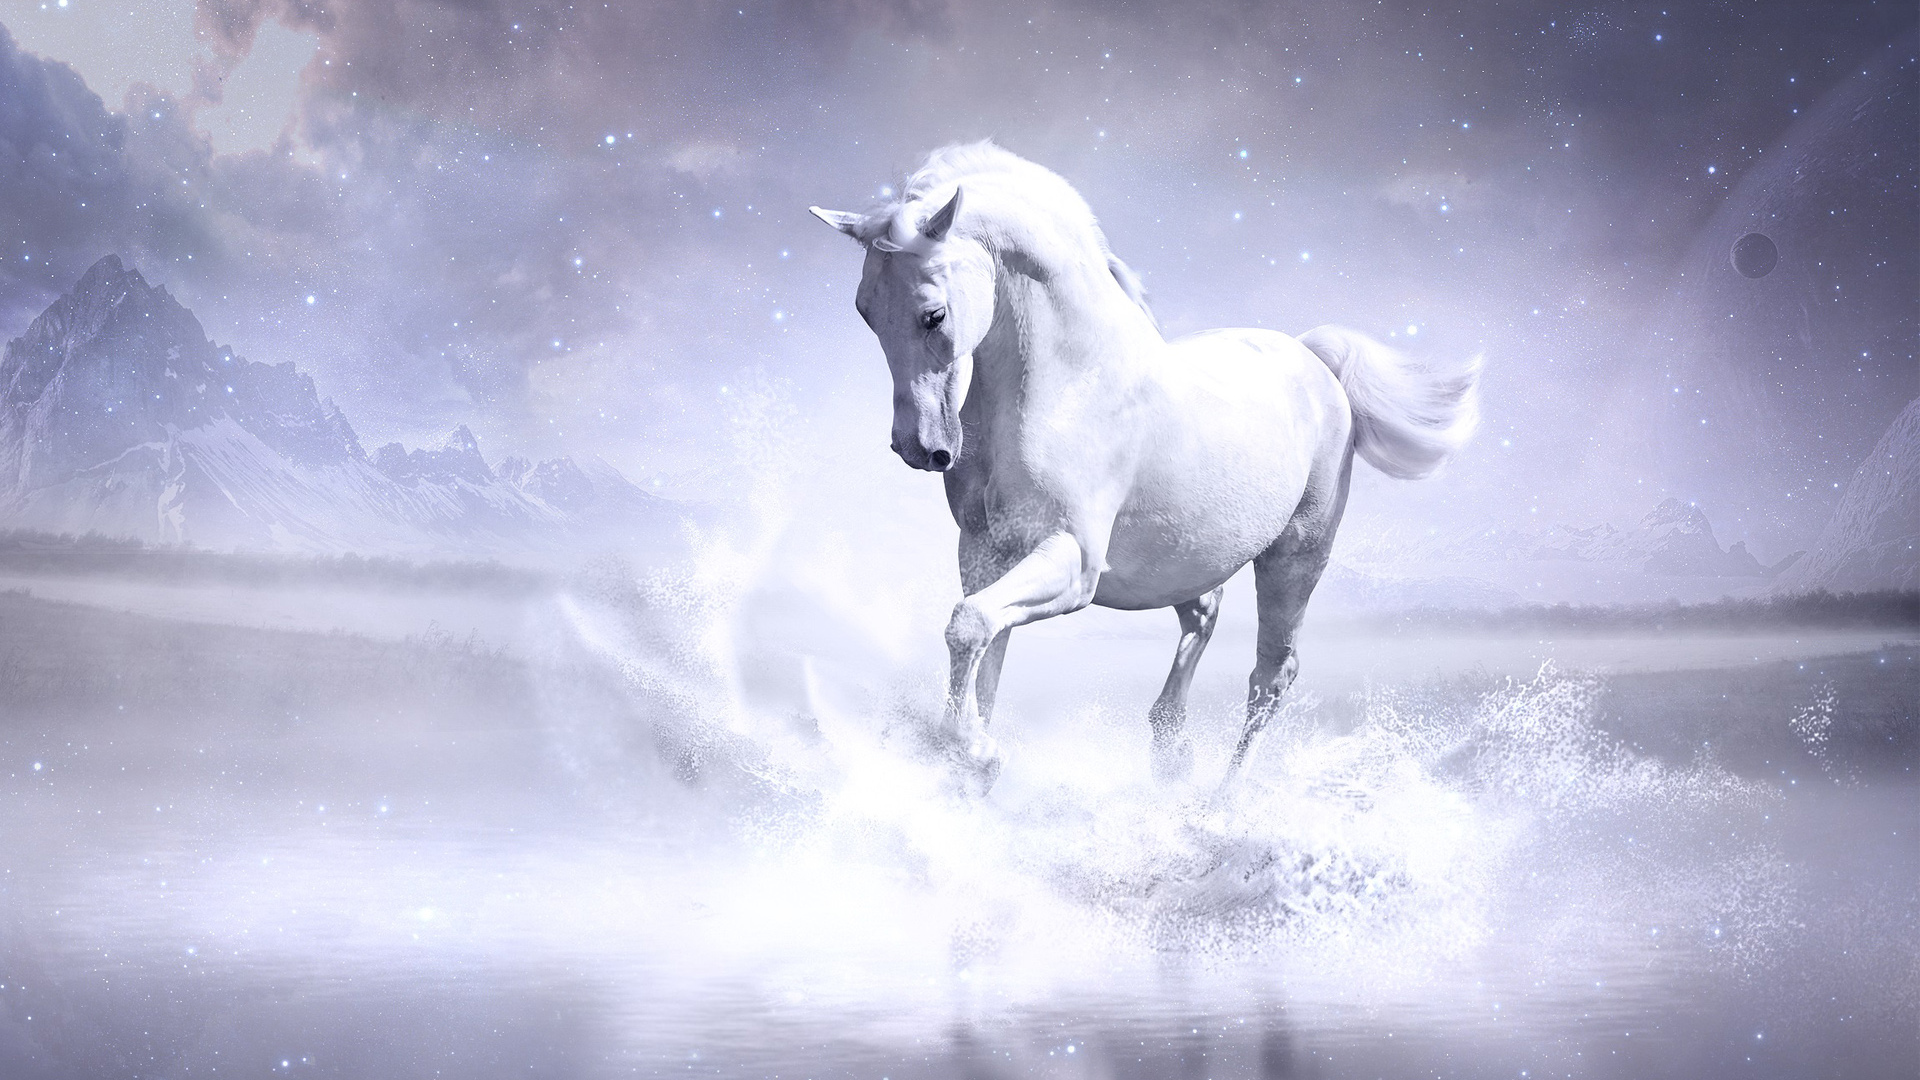 1920x1080 White Horse Laptop Full Hd 1080p Hd 4k Wallpapers Images Backgrounds Photos And Pictures